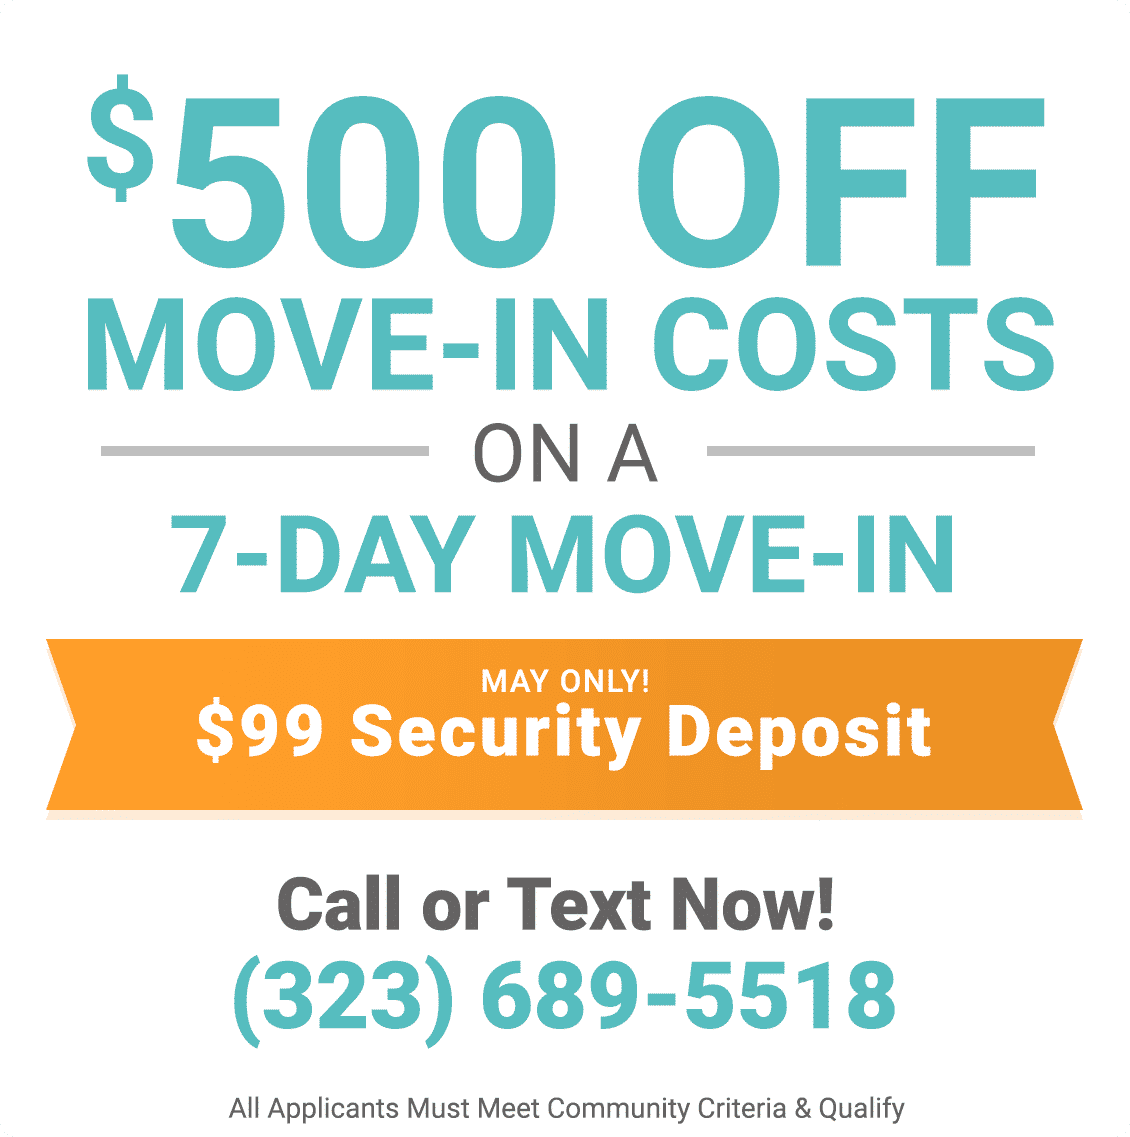 $500 off move-in costs on a 7-day move-in